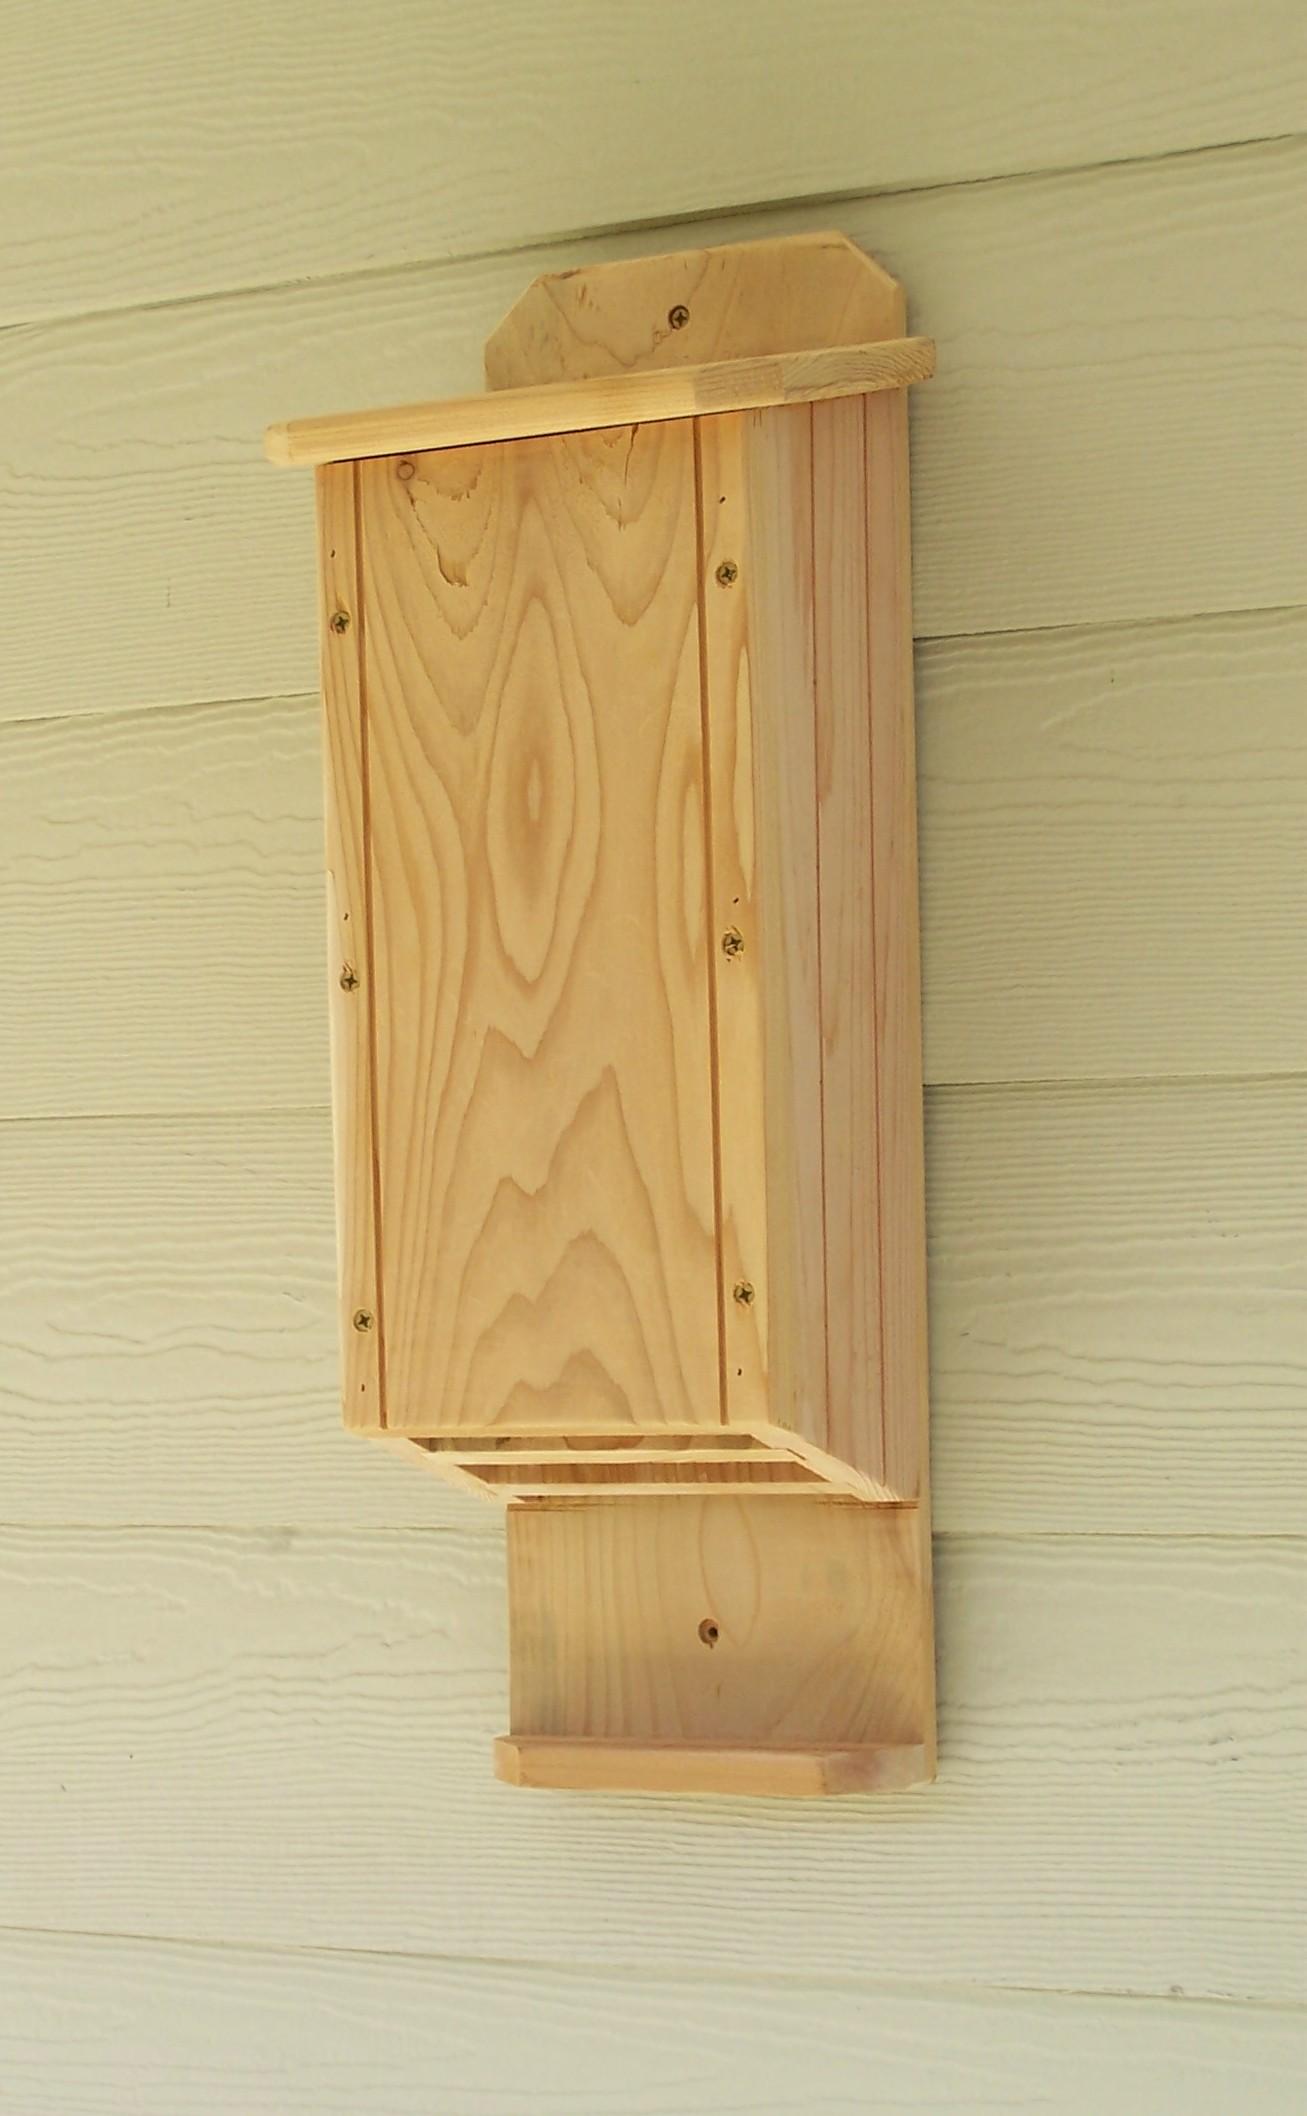 large bat house